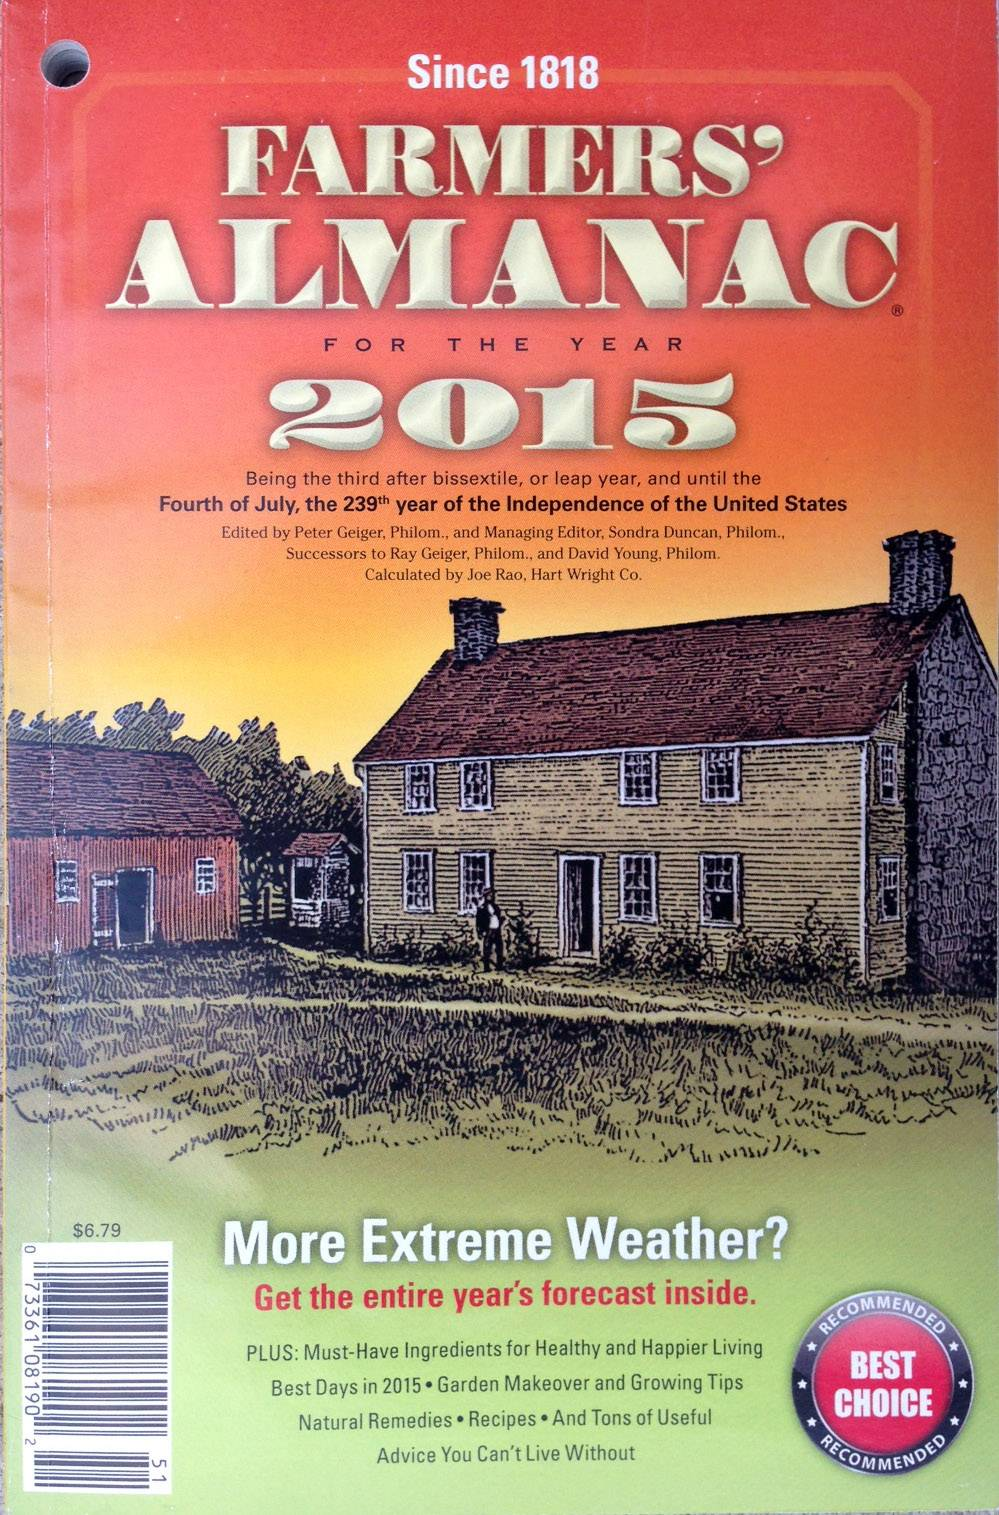 "The 2015 edition of the Farmers' Almanac is predicting another frigid winter after having correctly predicted the notorious ""polar vortex"" winter we just went through."